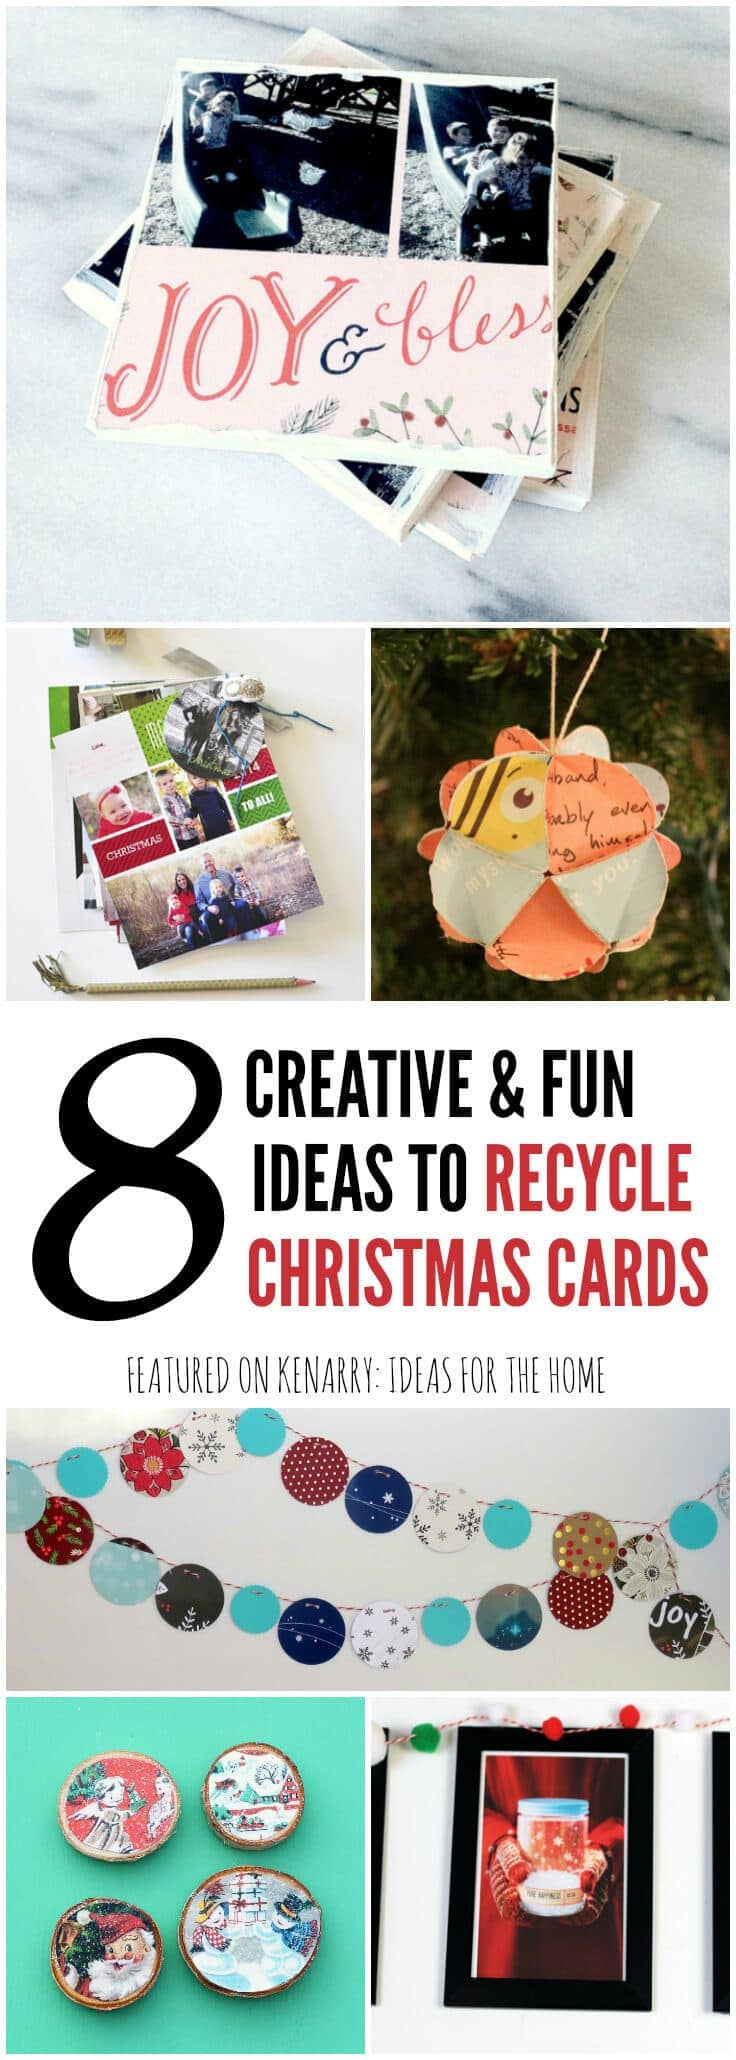 What fun ways to recycle Christmas cards to use for crafts and decor! Use any of these 8 ideas to upcycle your holiday cards and continue to enjoy them long after the season is over.